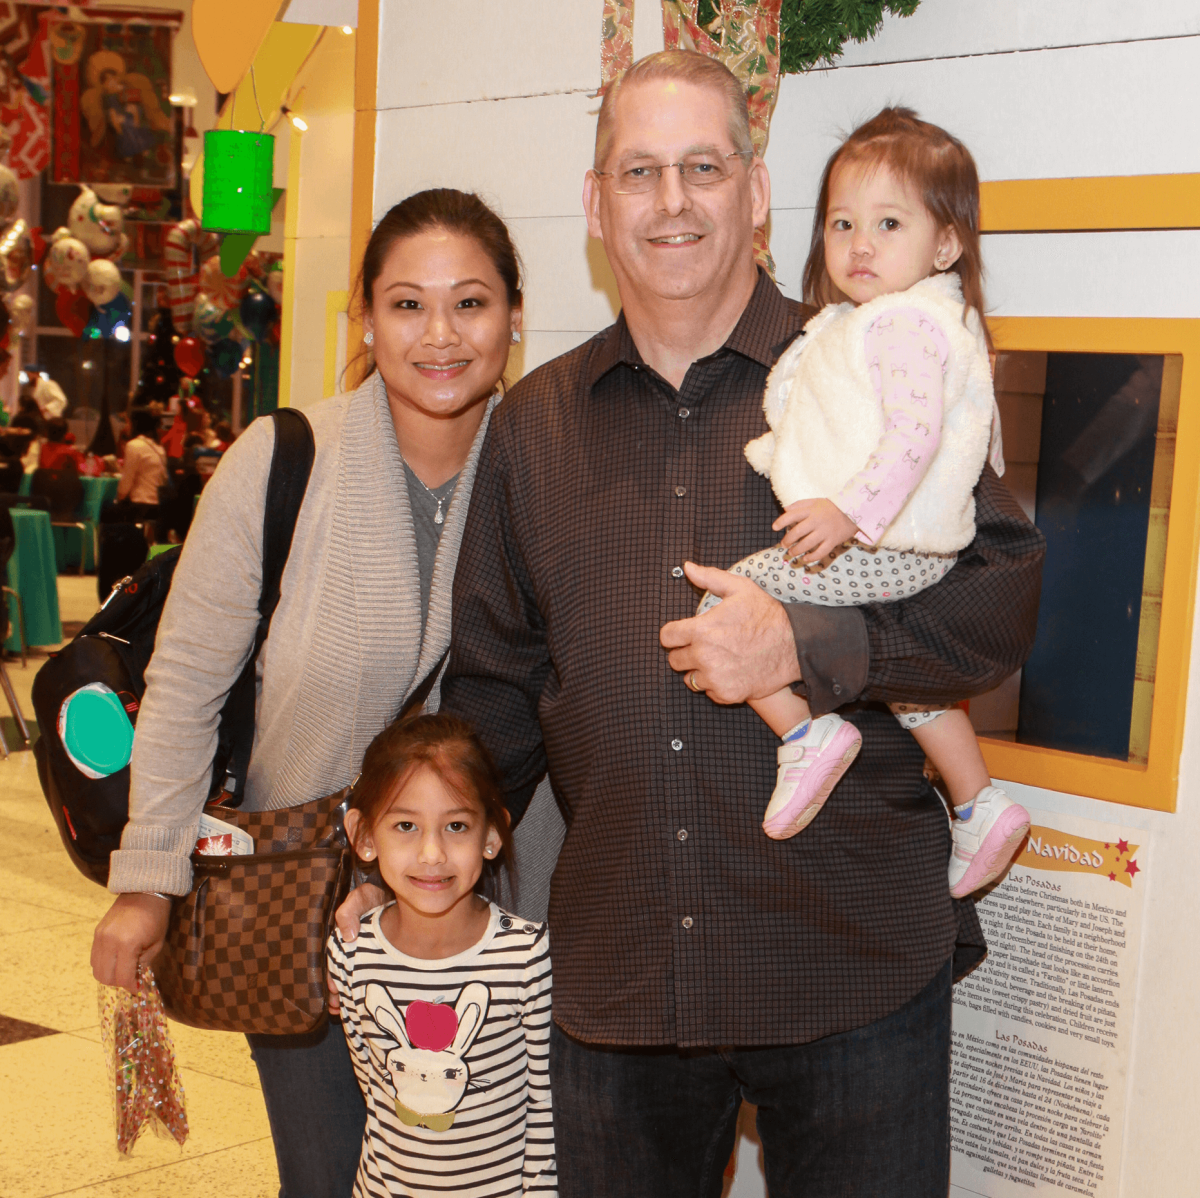 Children's Museum holiday party, Linda Dang, Tom Debesse and childre